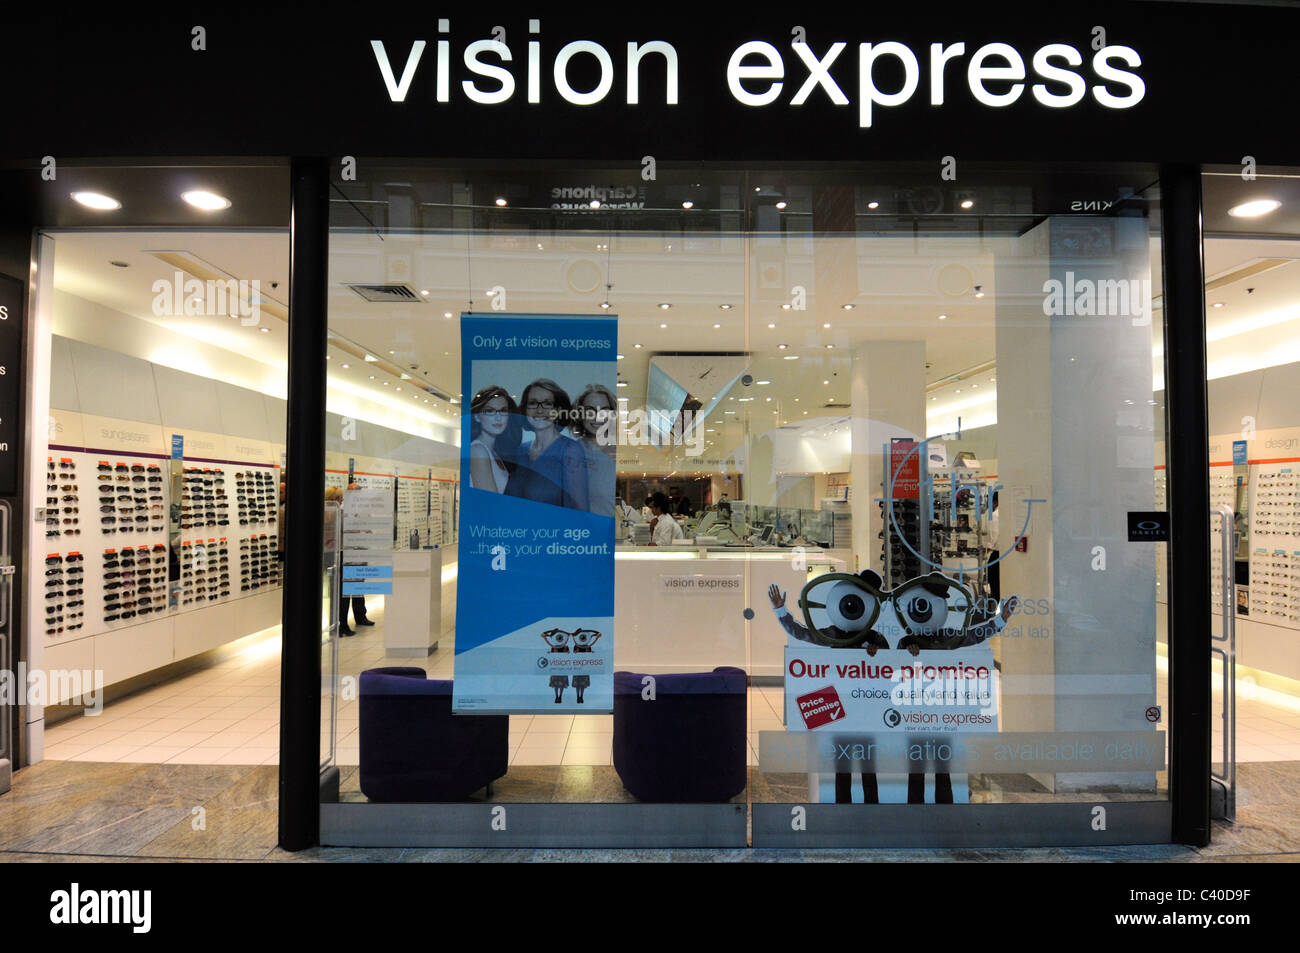 ad12995388d Vision Express Store Stock Photos   Vision Express Store Stock ...